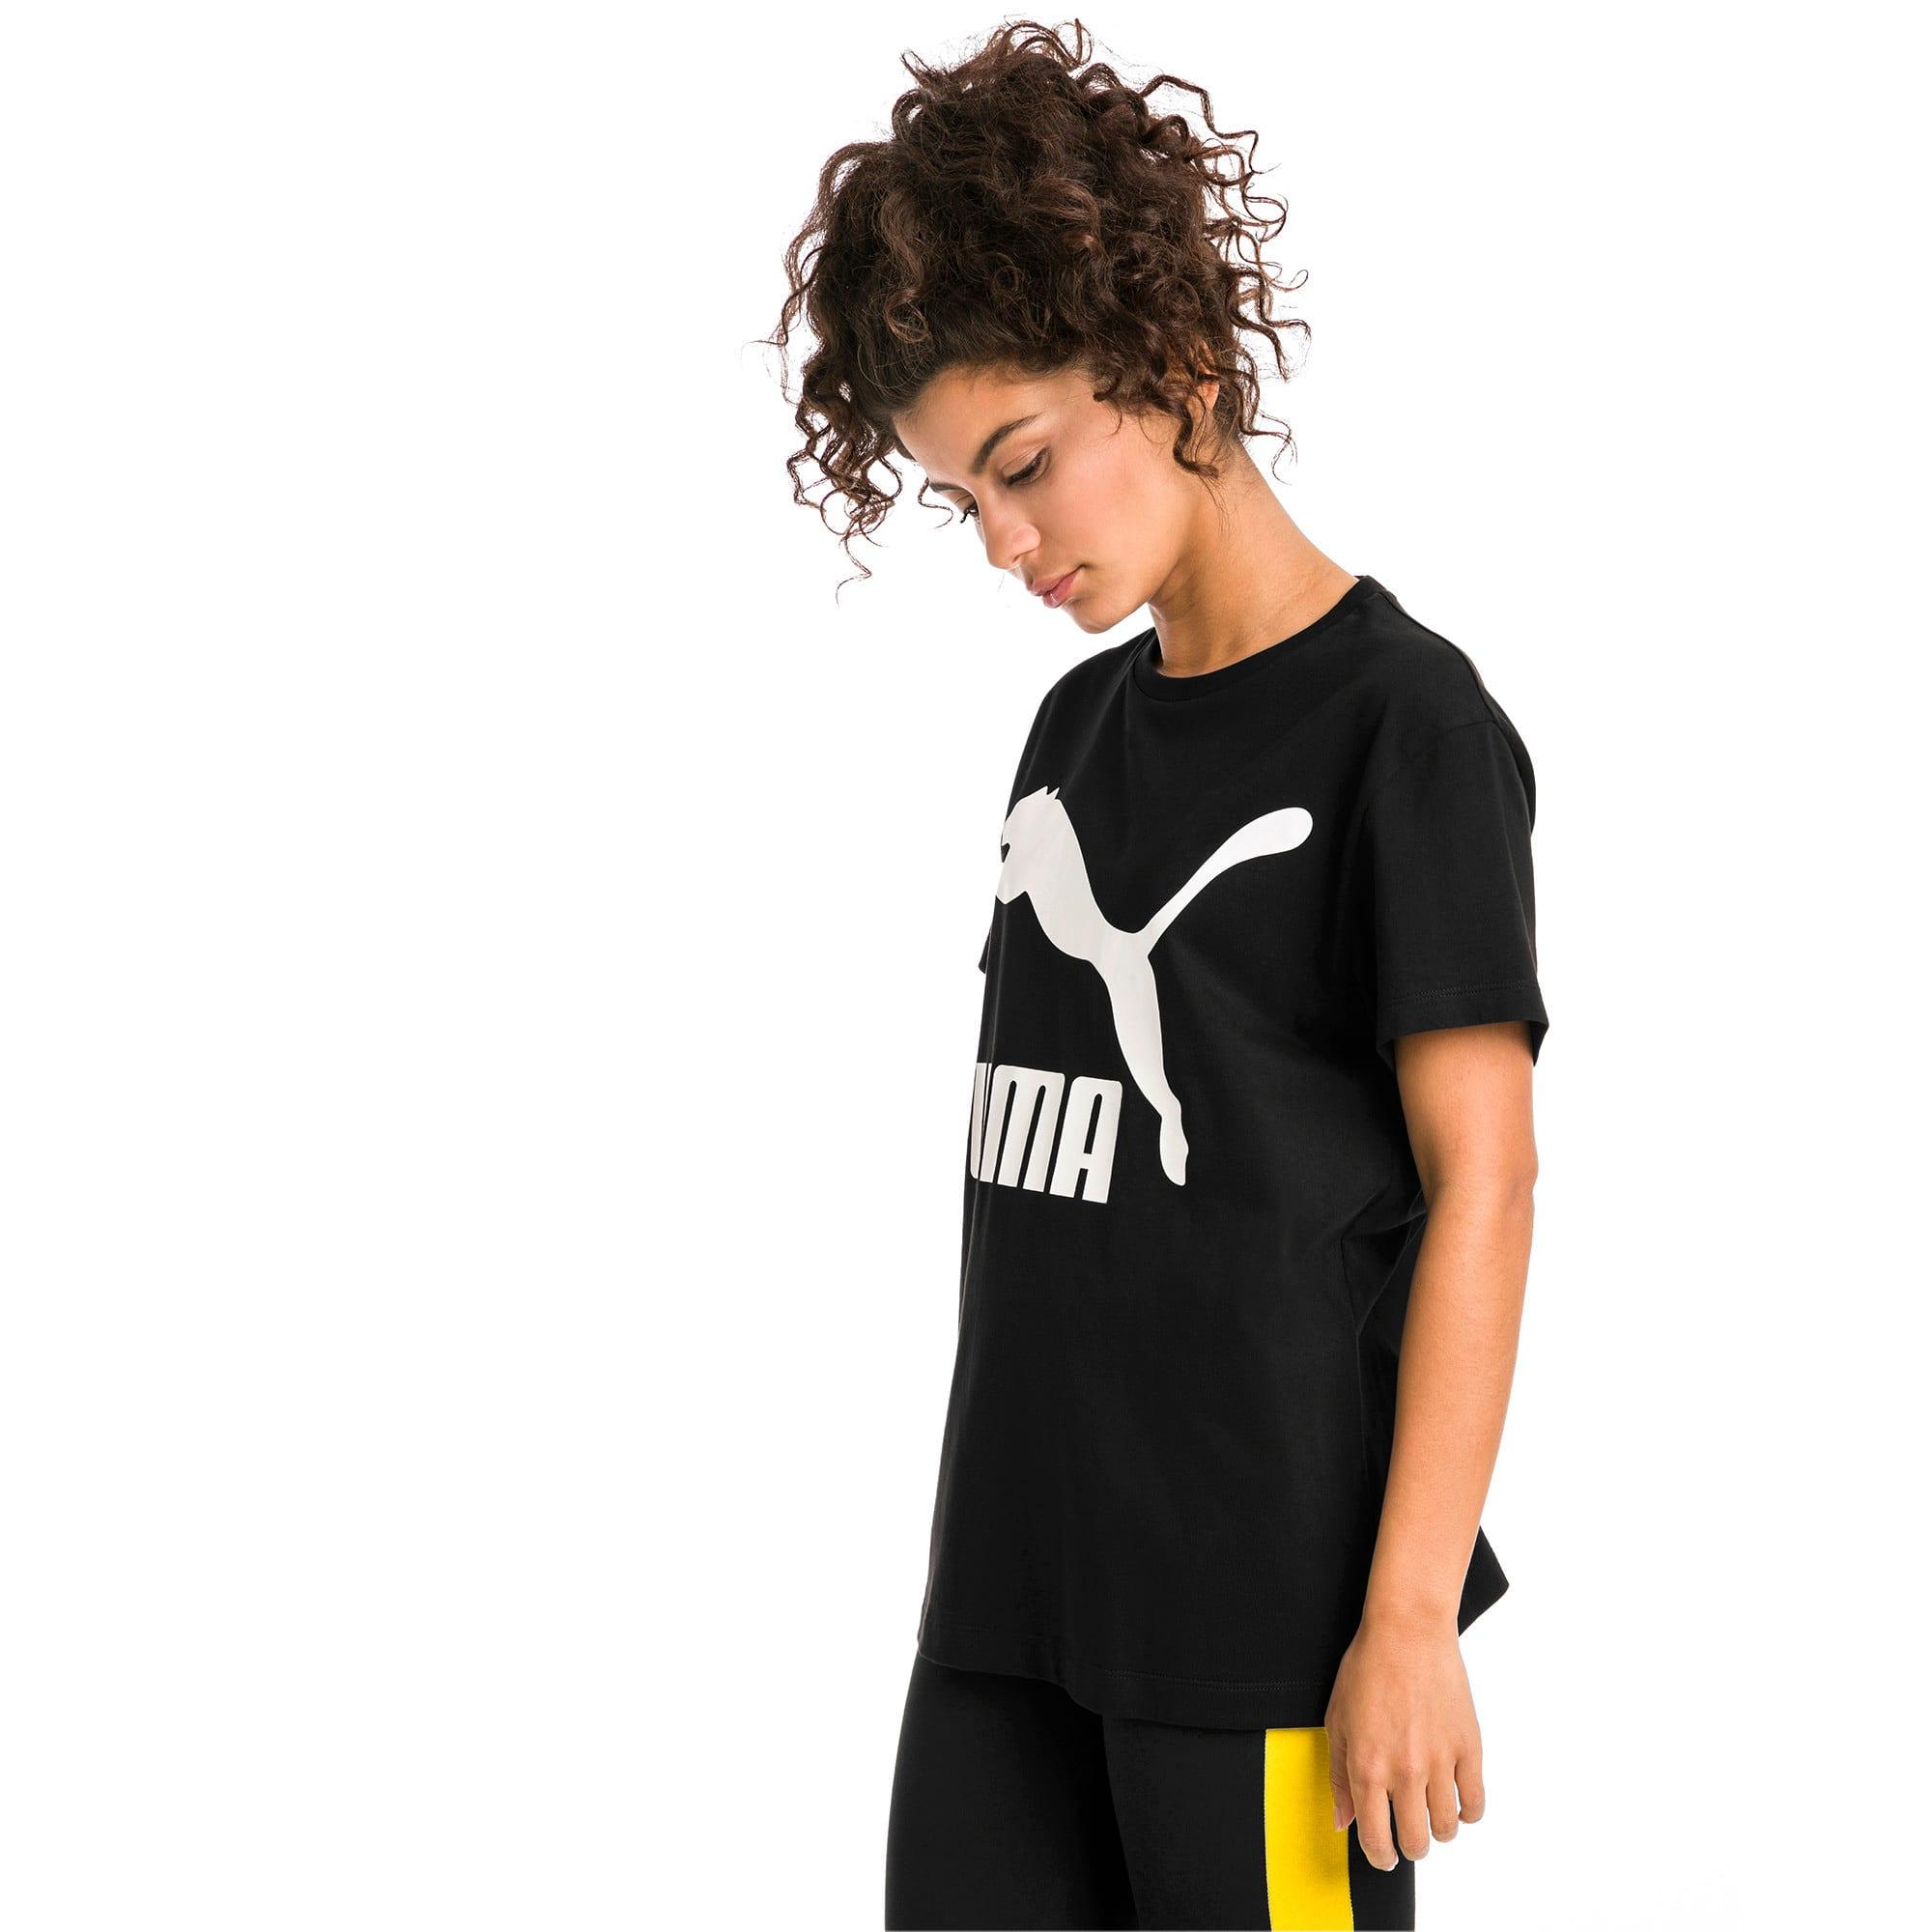 Thumbnail 2 of Short Sleeve Women's Tee, Cotton Black-white, medium